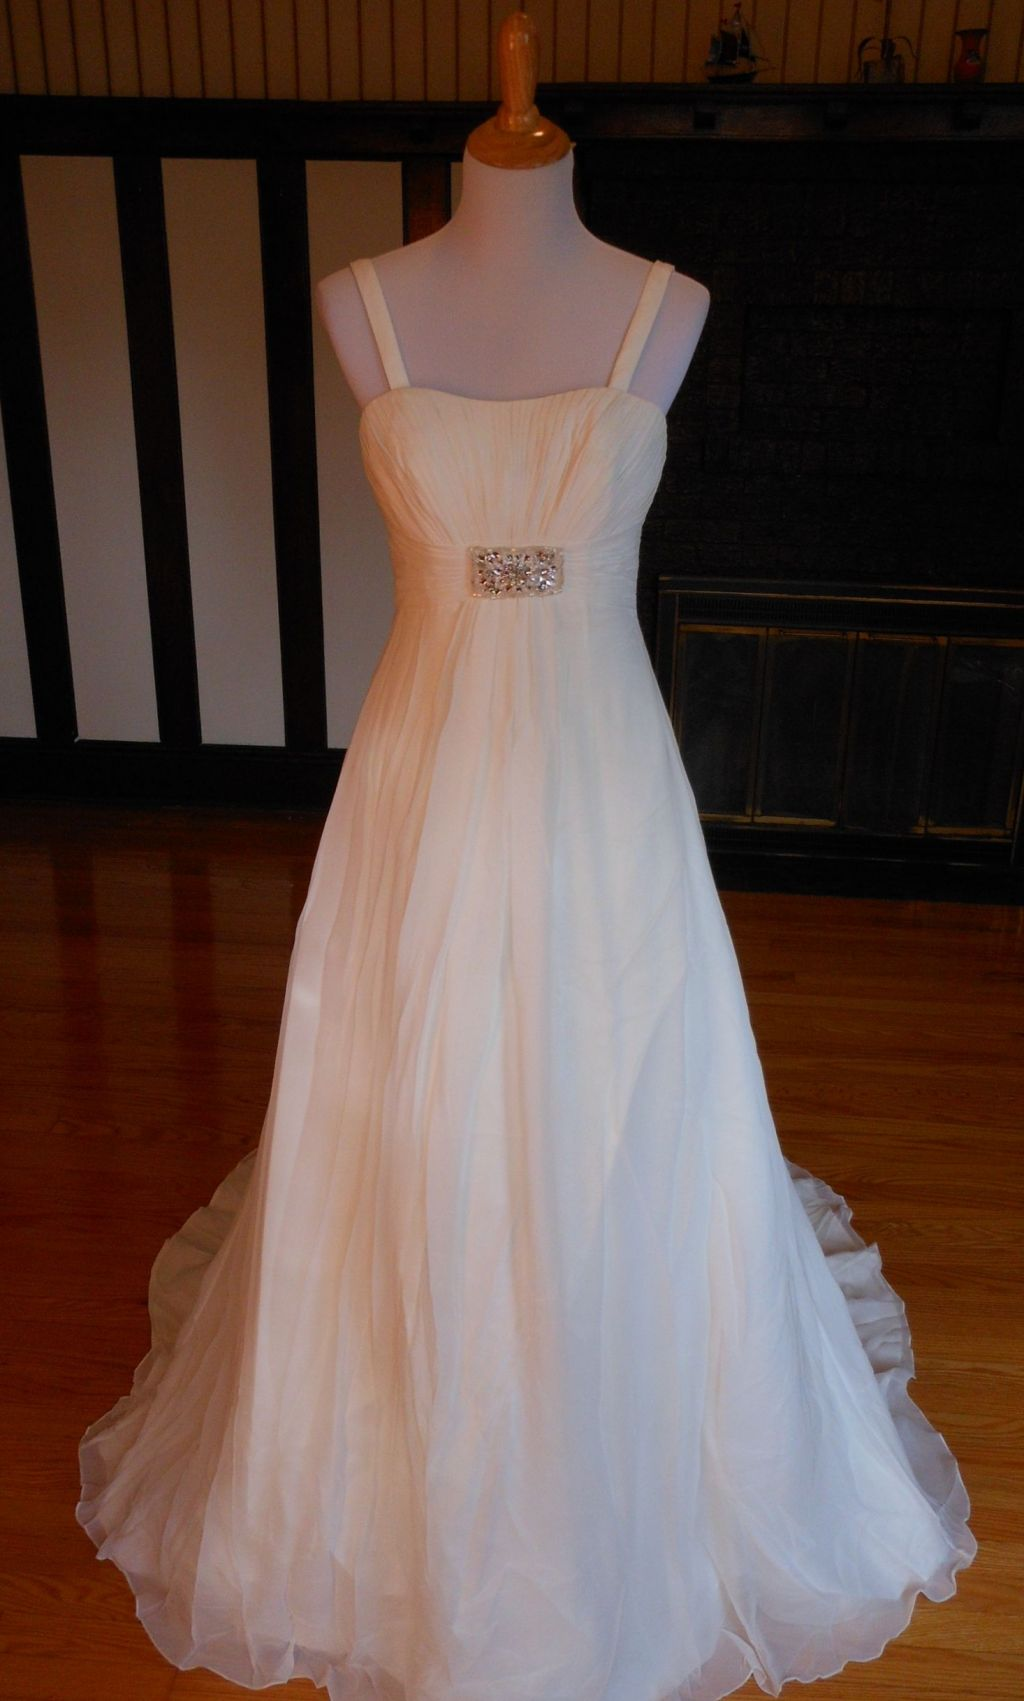 Other bridal by kris belinda 99 size 4 new un for Wedding dresses for 99